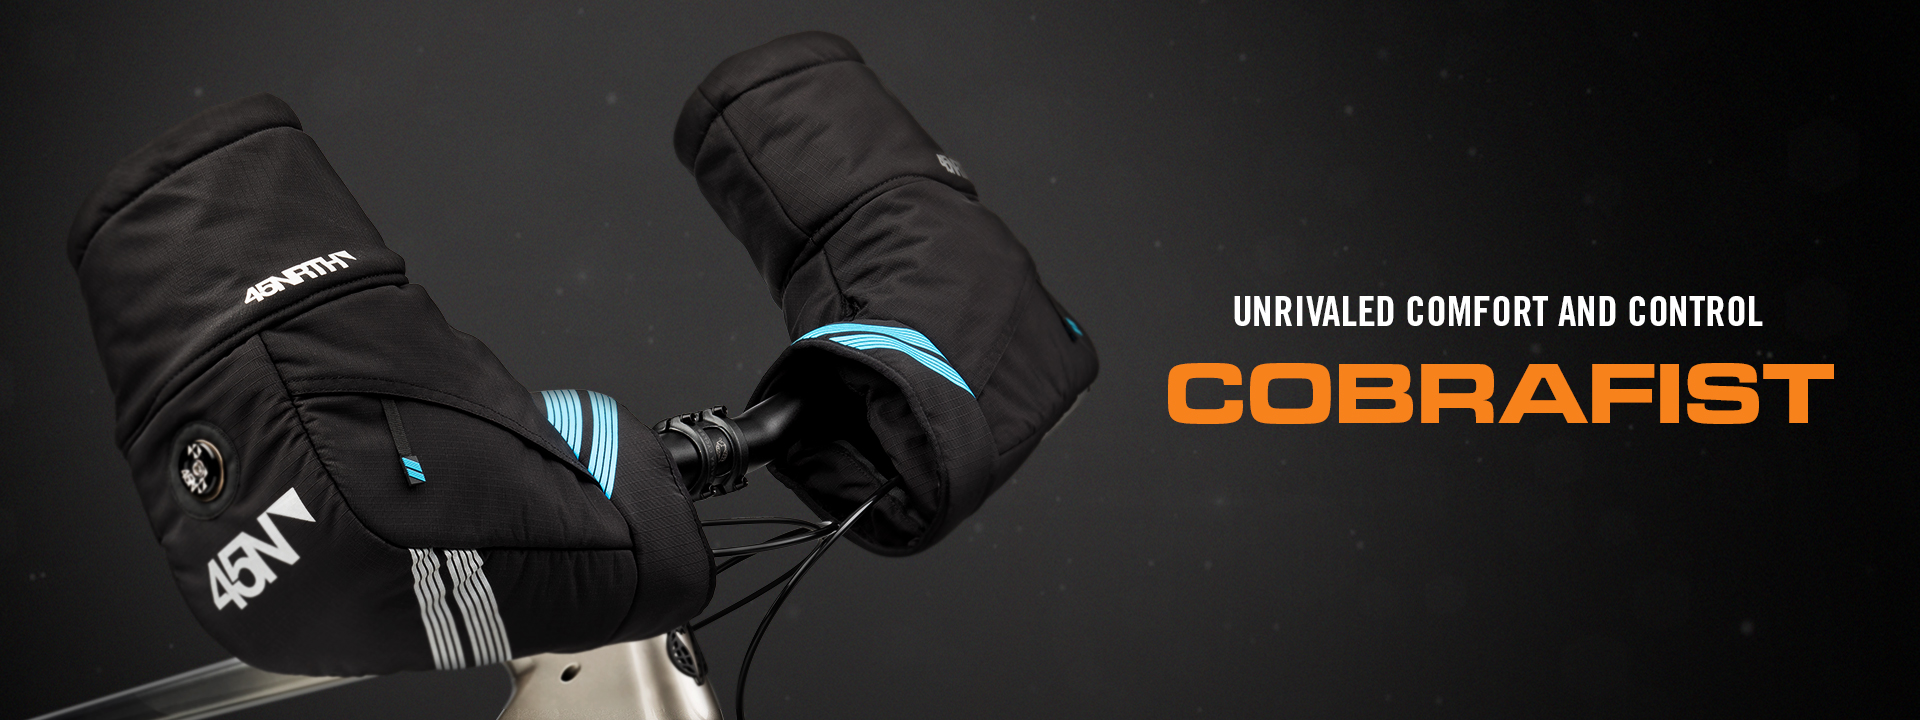 Unrivaled Comfort and Control - Cobrafist - Pogies mounted on handlebars